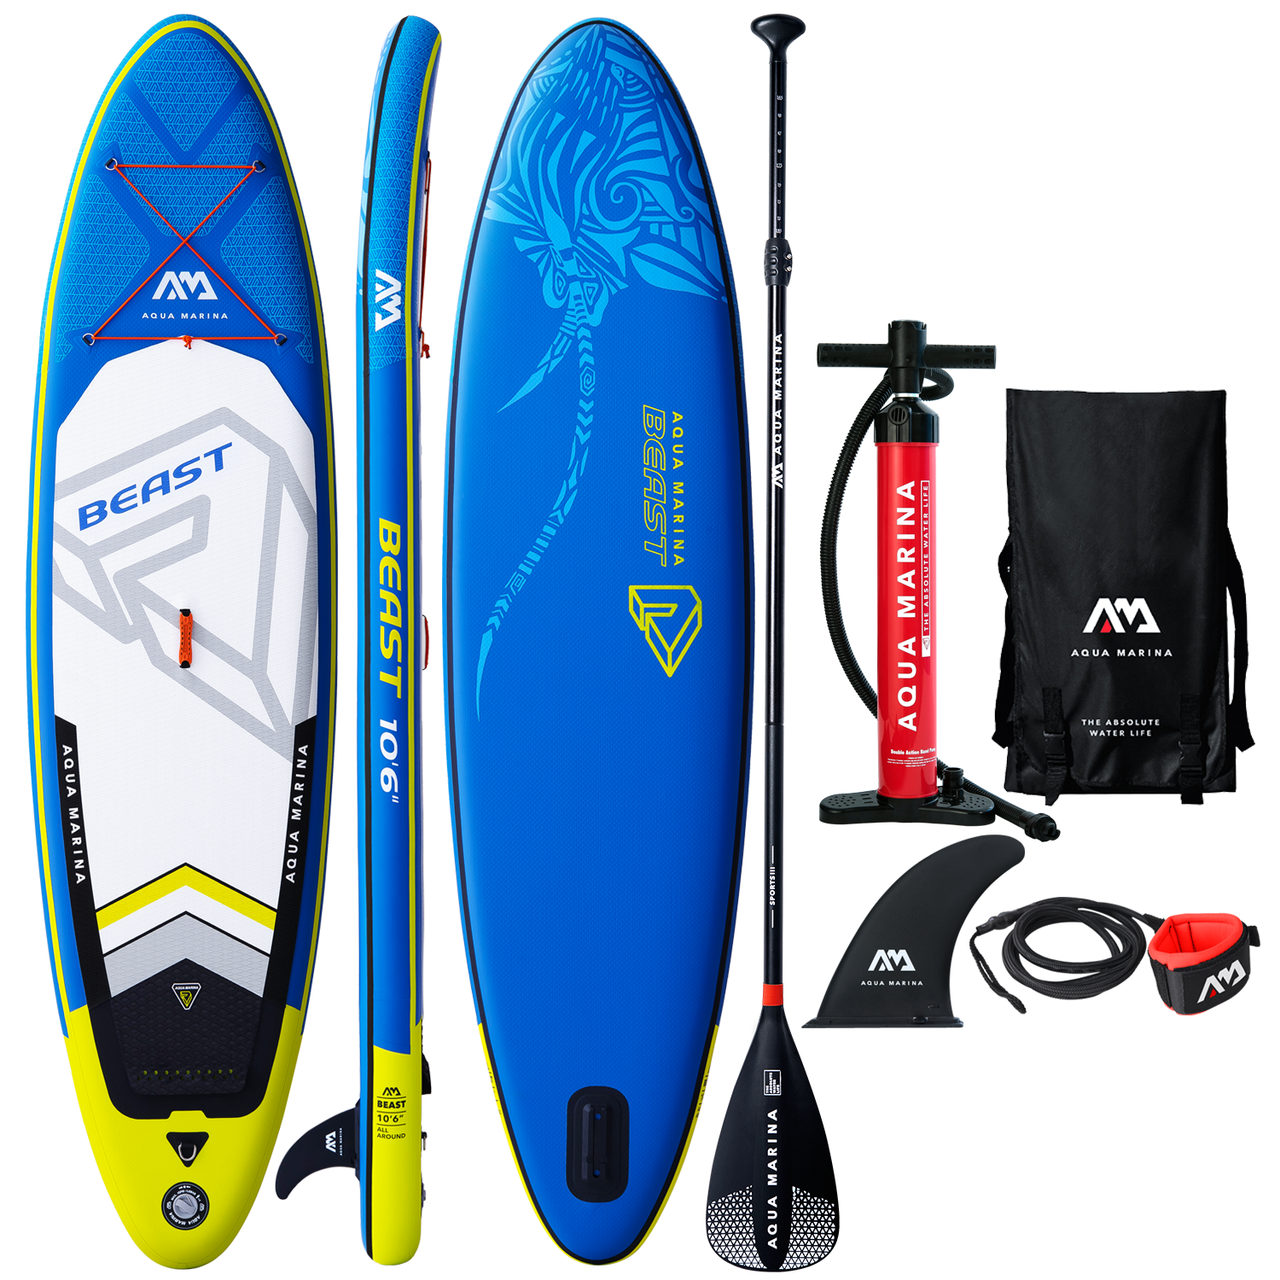 Safety Leash 6 Thick | Includes Double Action Pump Aqua Marina Beast Inflatable Stand Up Paddle Board 106 Sports III Paddle Slide-in Center Fin MAGIC Backpack